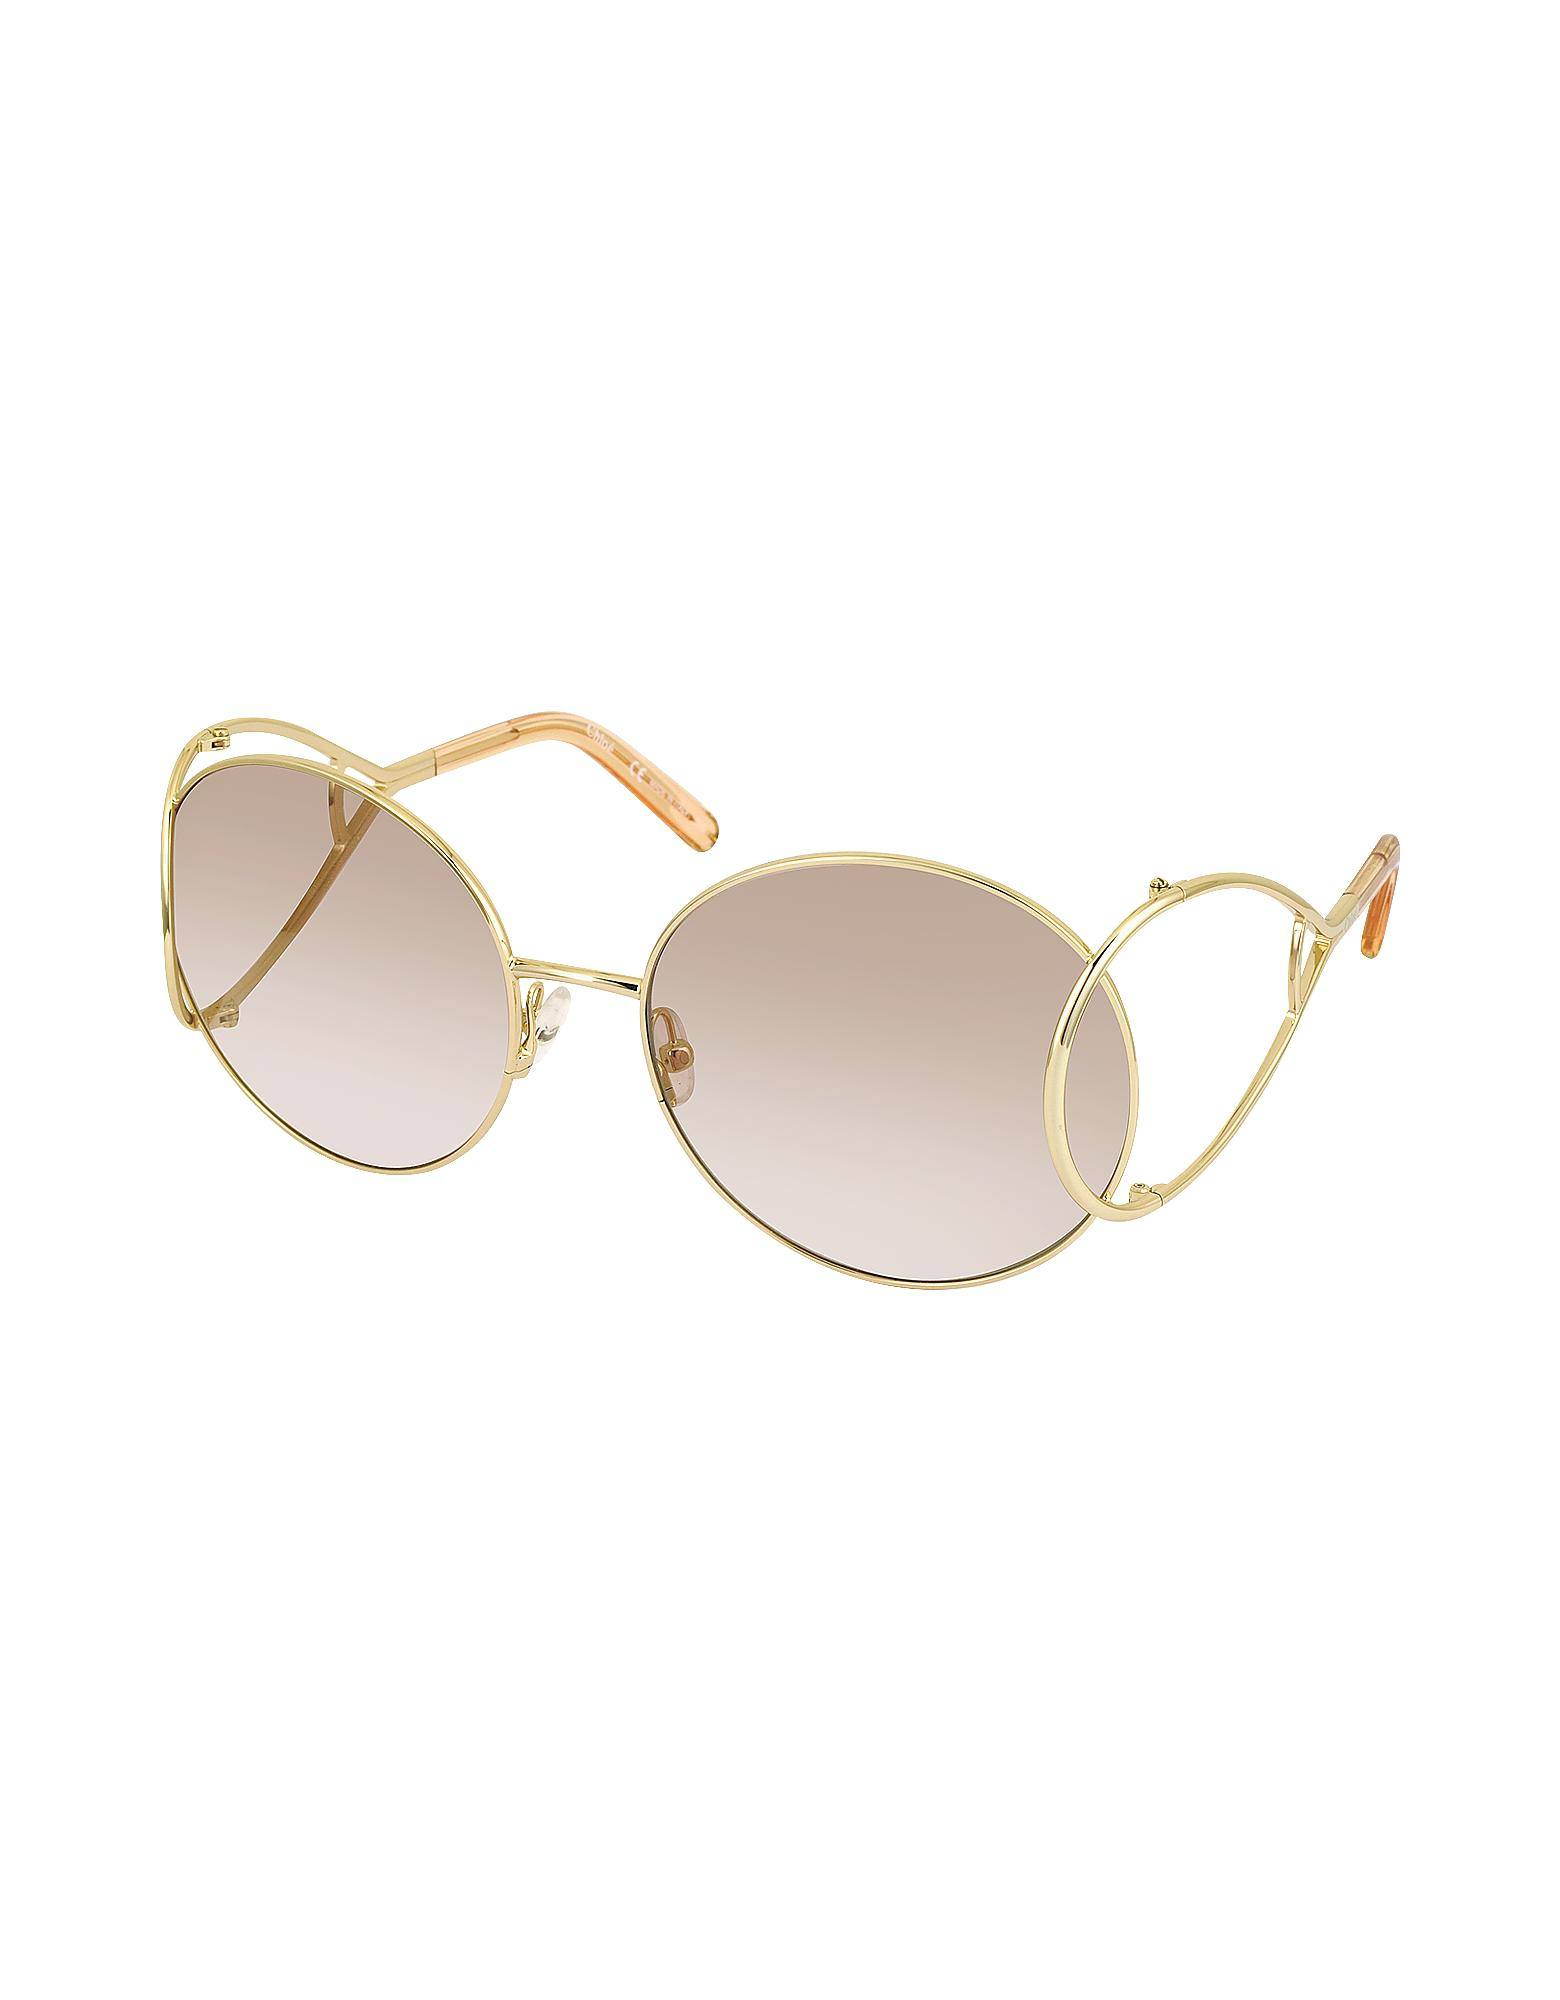 2639580dded Chloé Jackson Ce 124s Metal Round Women s Sunglasses - Save  6.3191153238546605% - Lyst